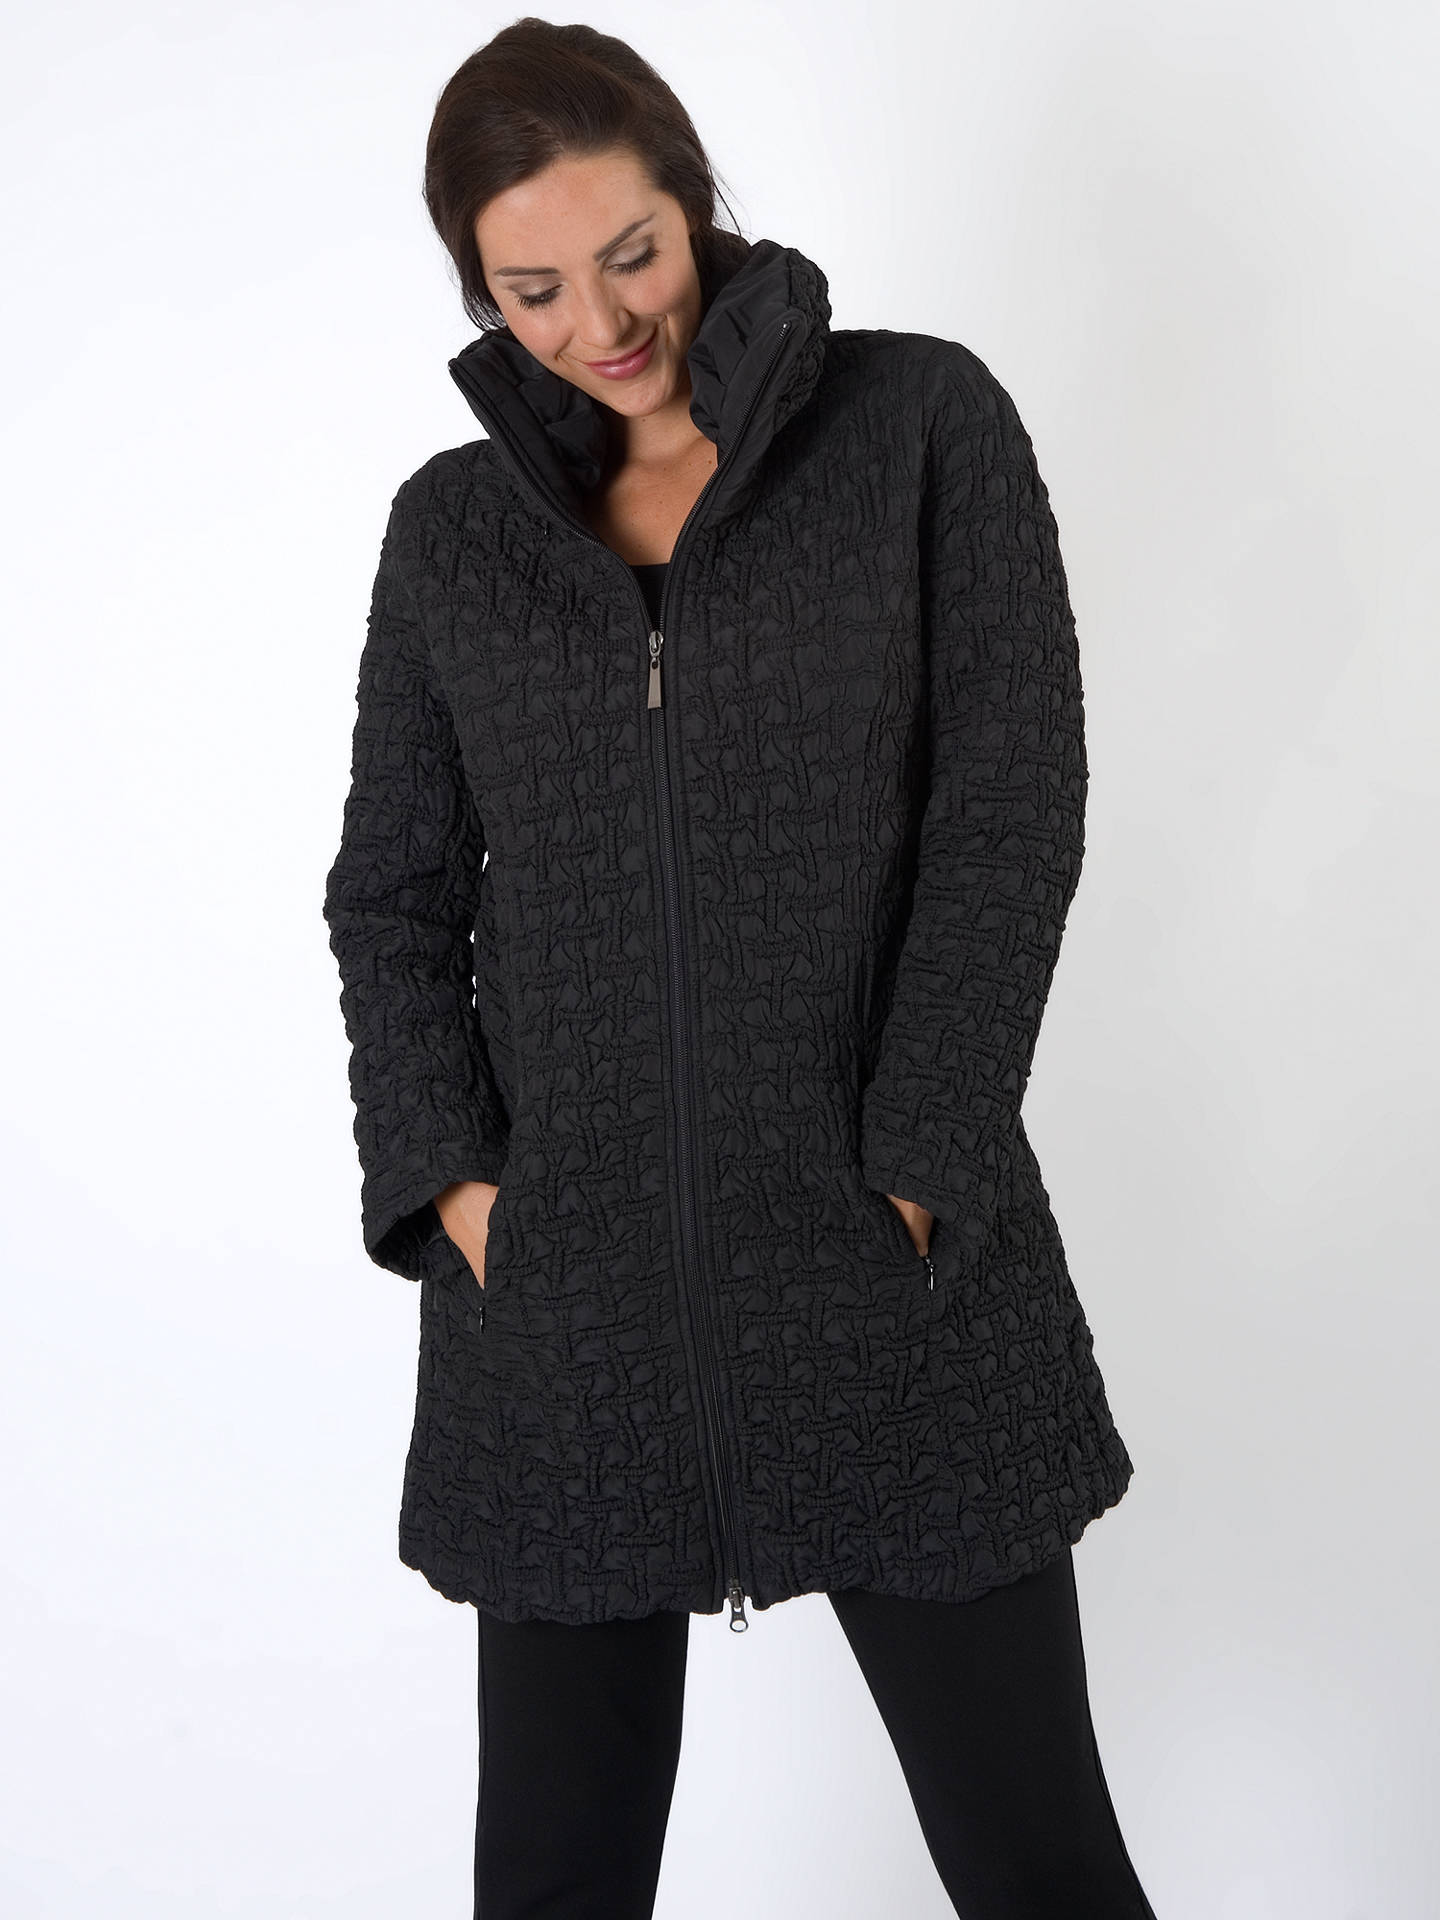 BuyChesca Mini Bonfire Quilted Coat, Black, 12 Online at johnlewis.com